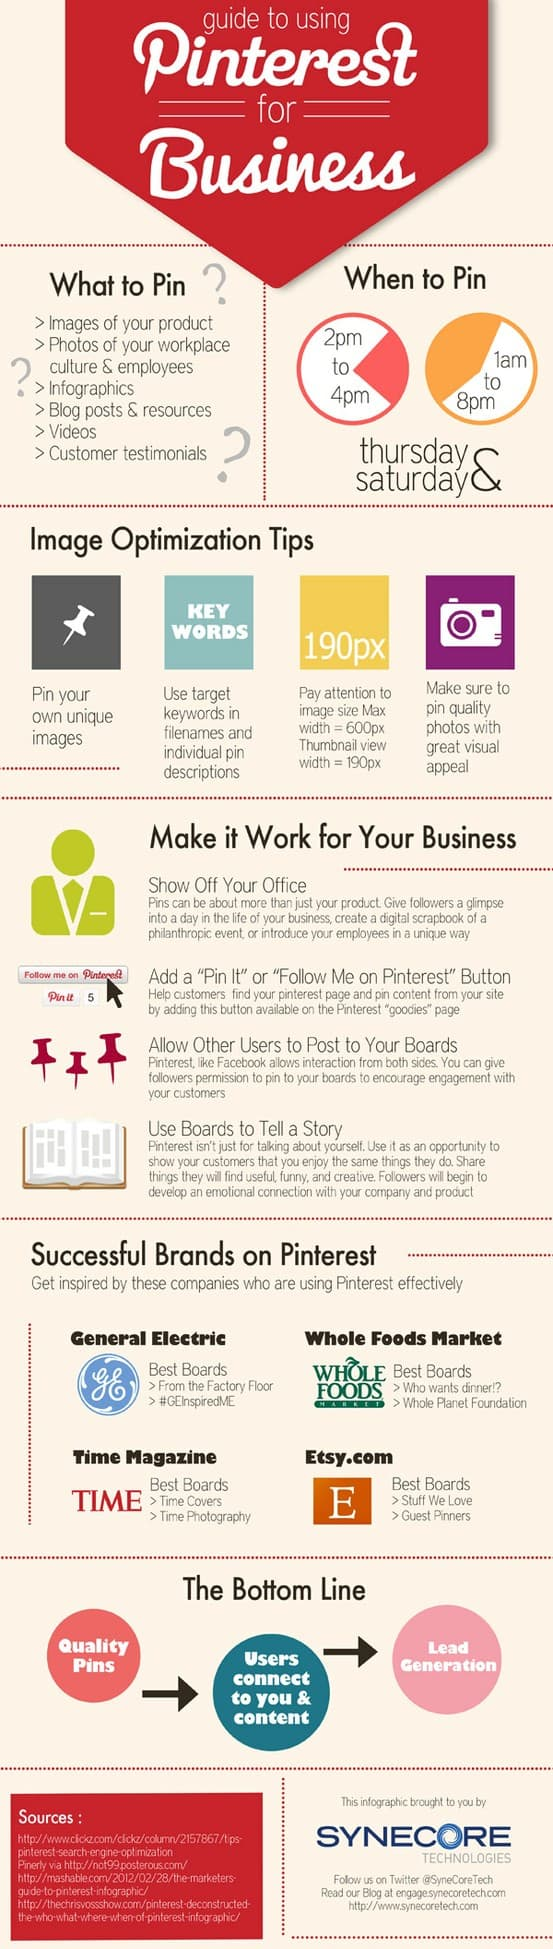 Pinterest INfographic by Synecore